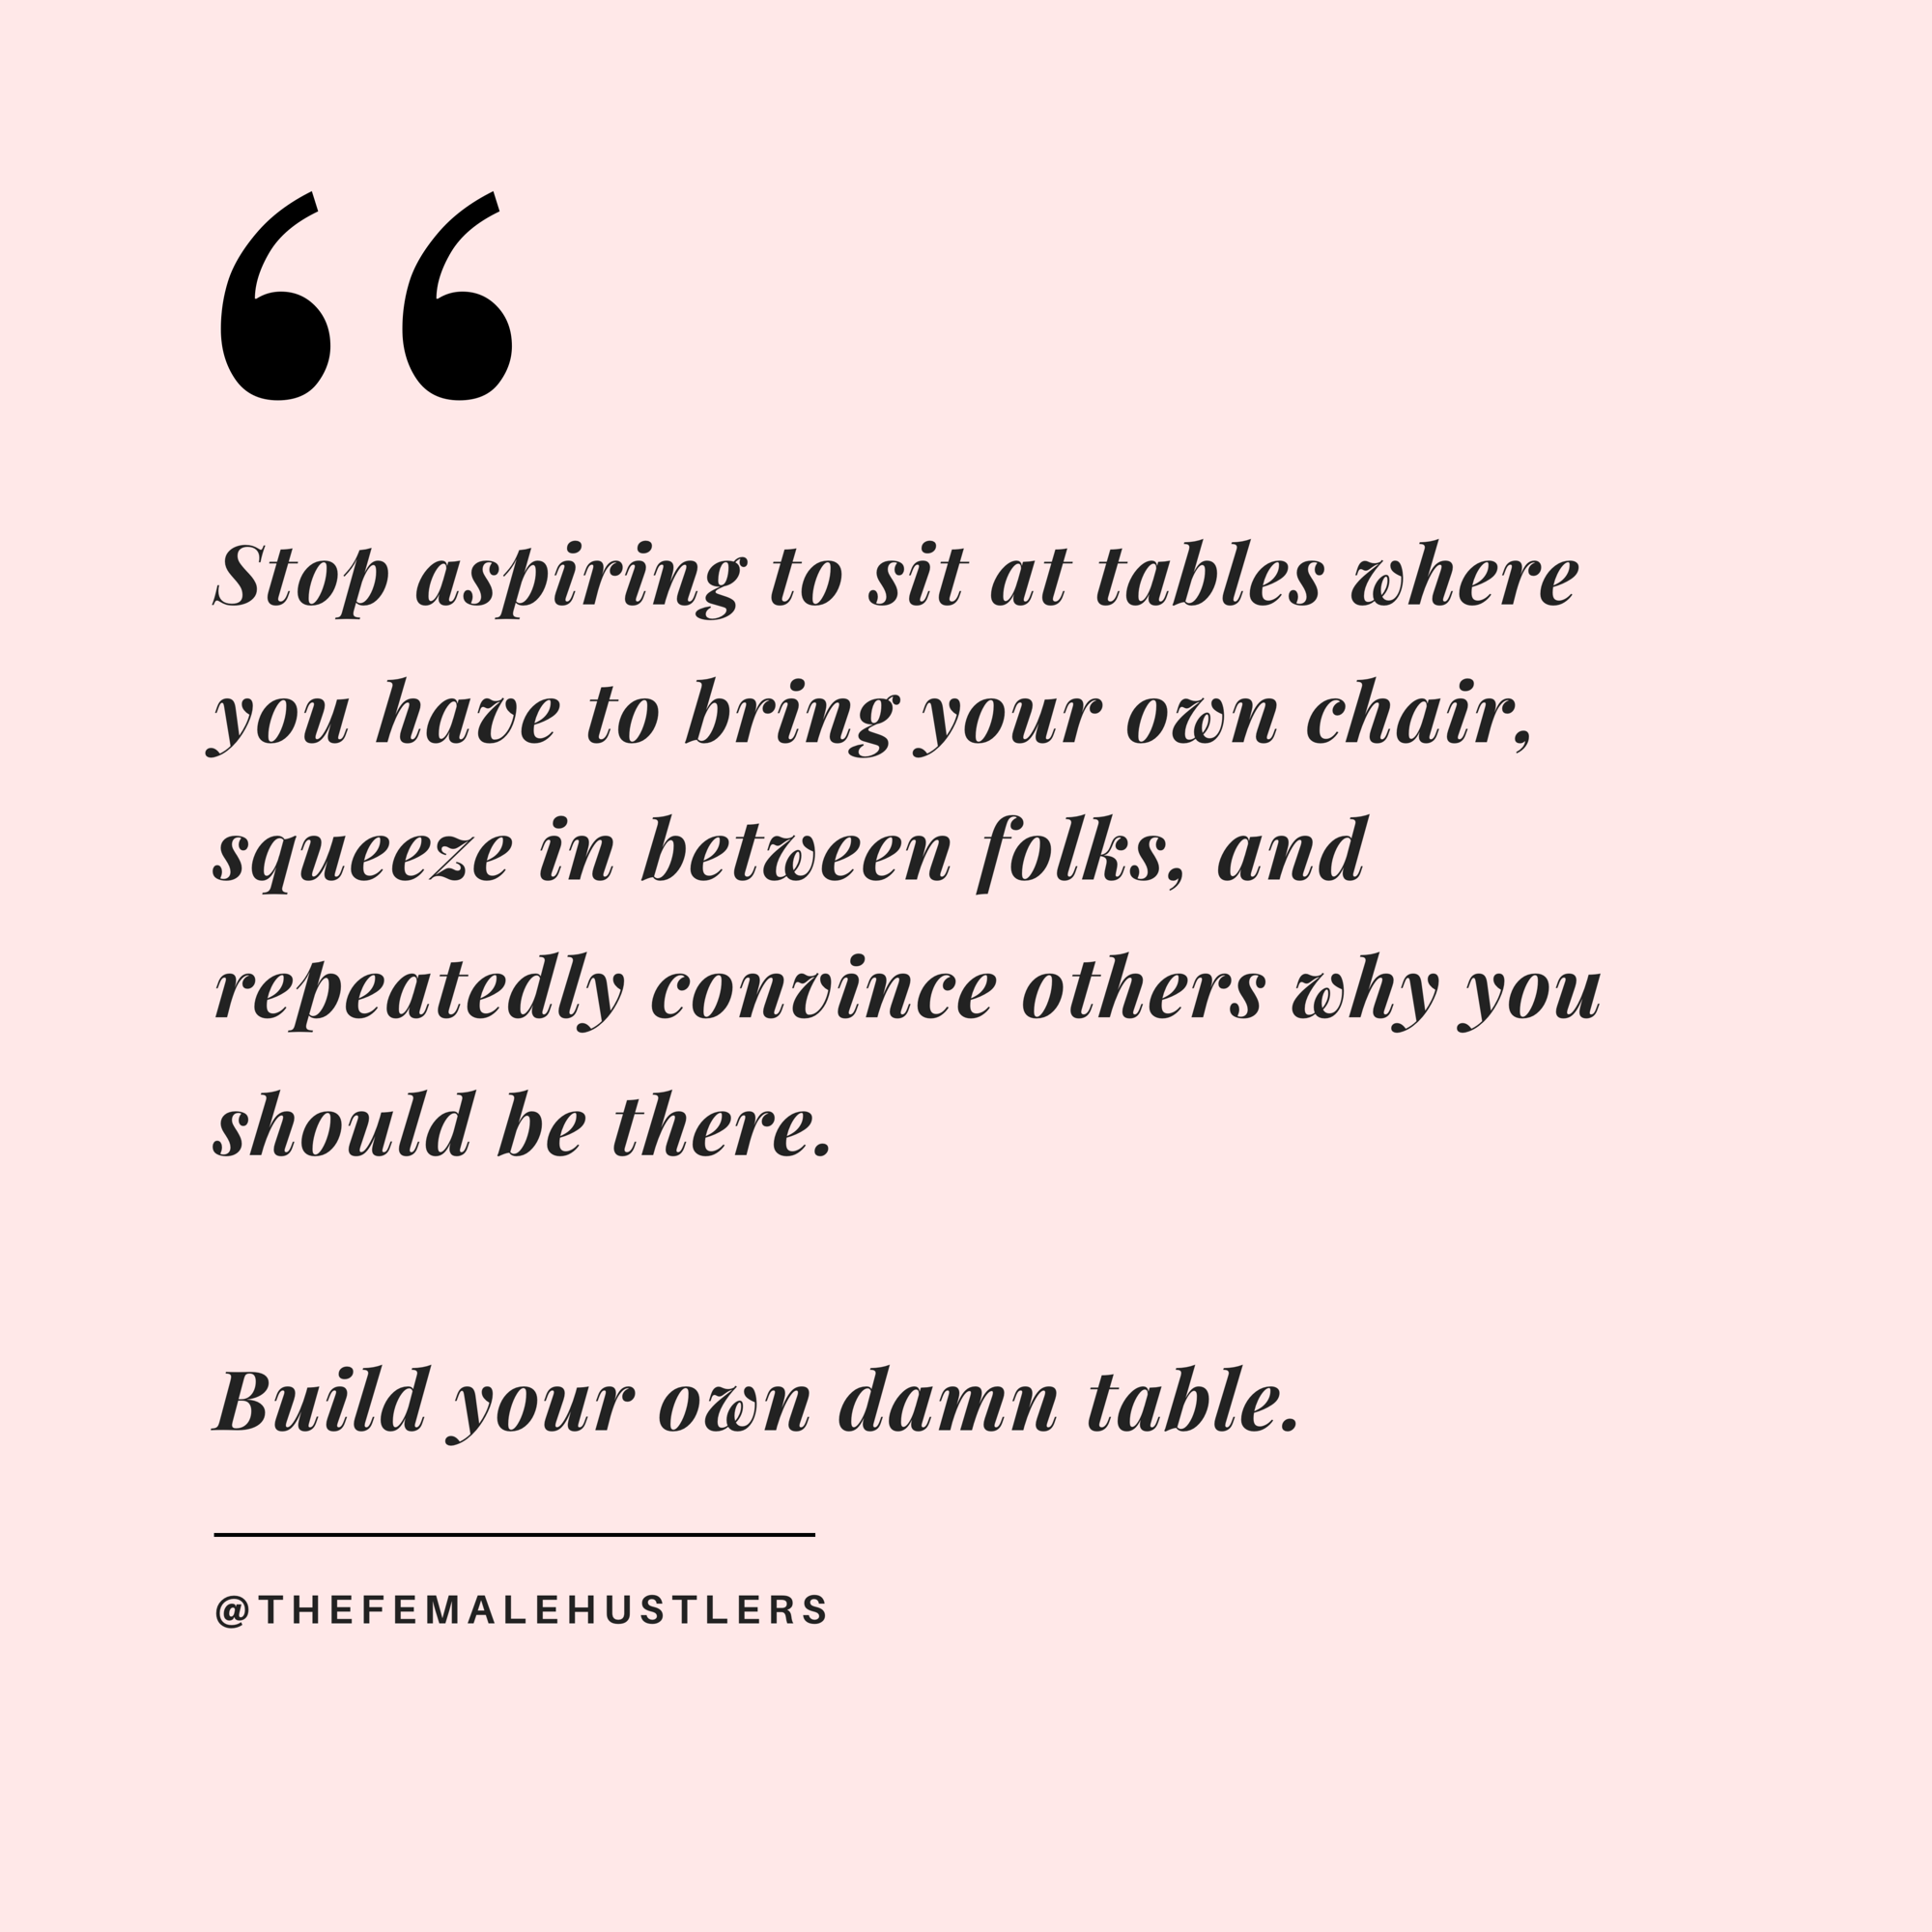 Www Thefemalehustlers Com Inspirational Quotes Words Of Wisdom Wise Words